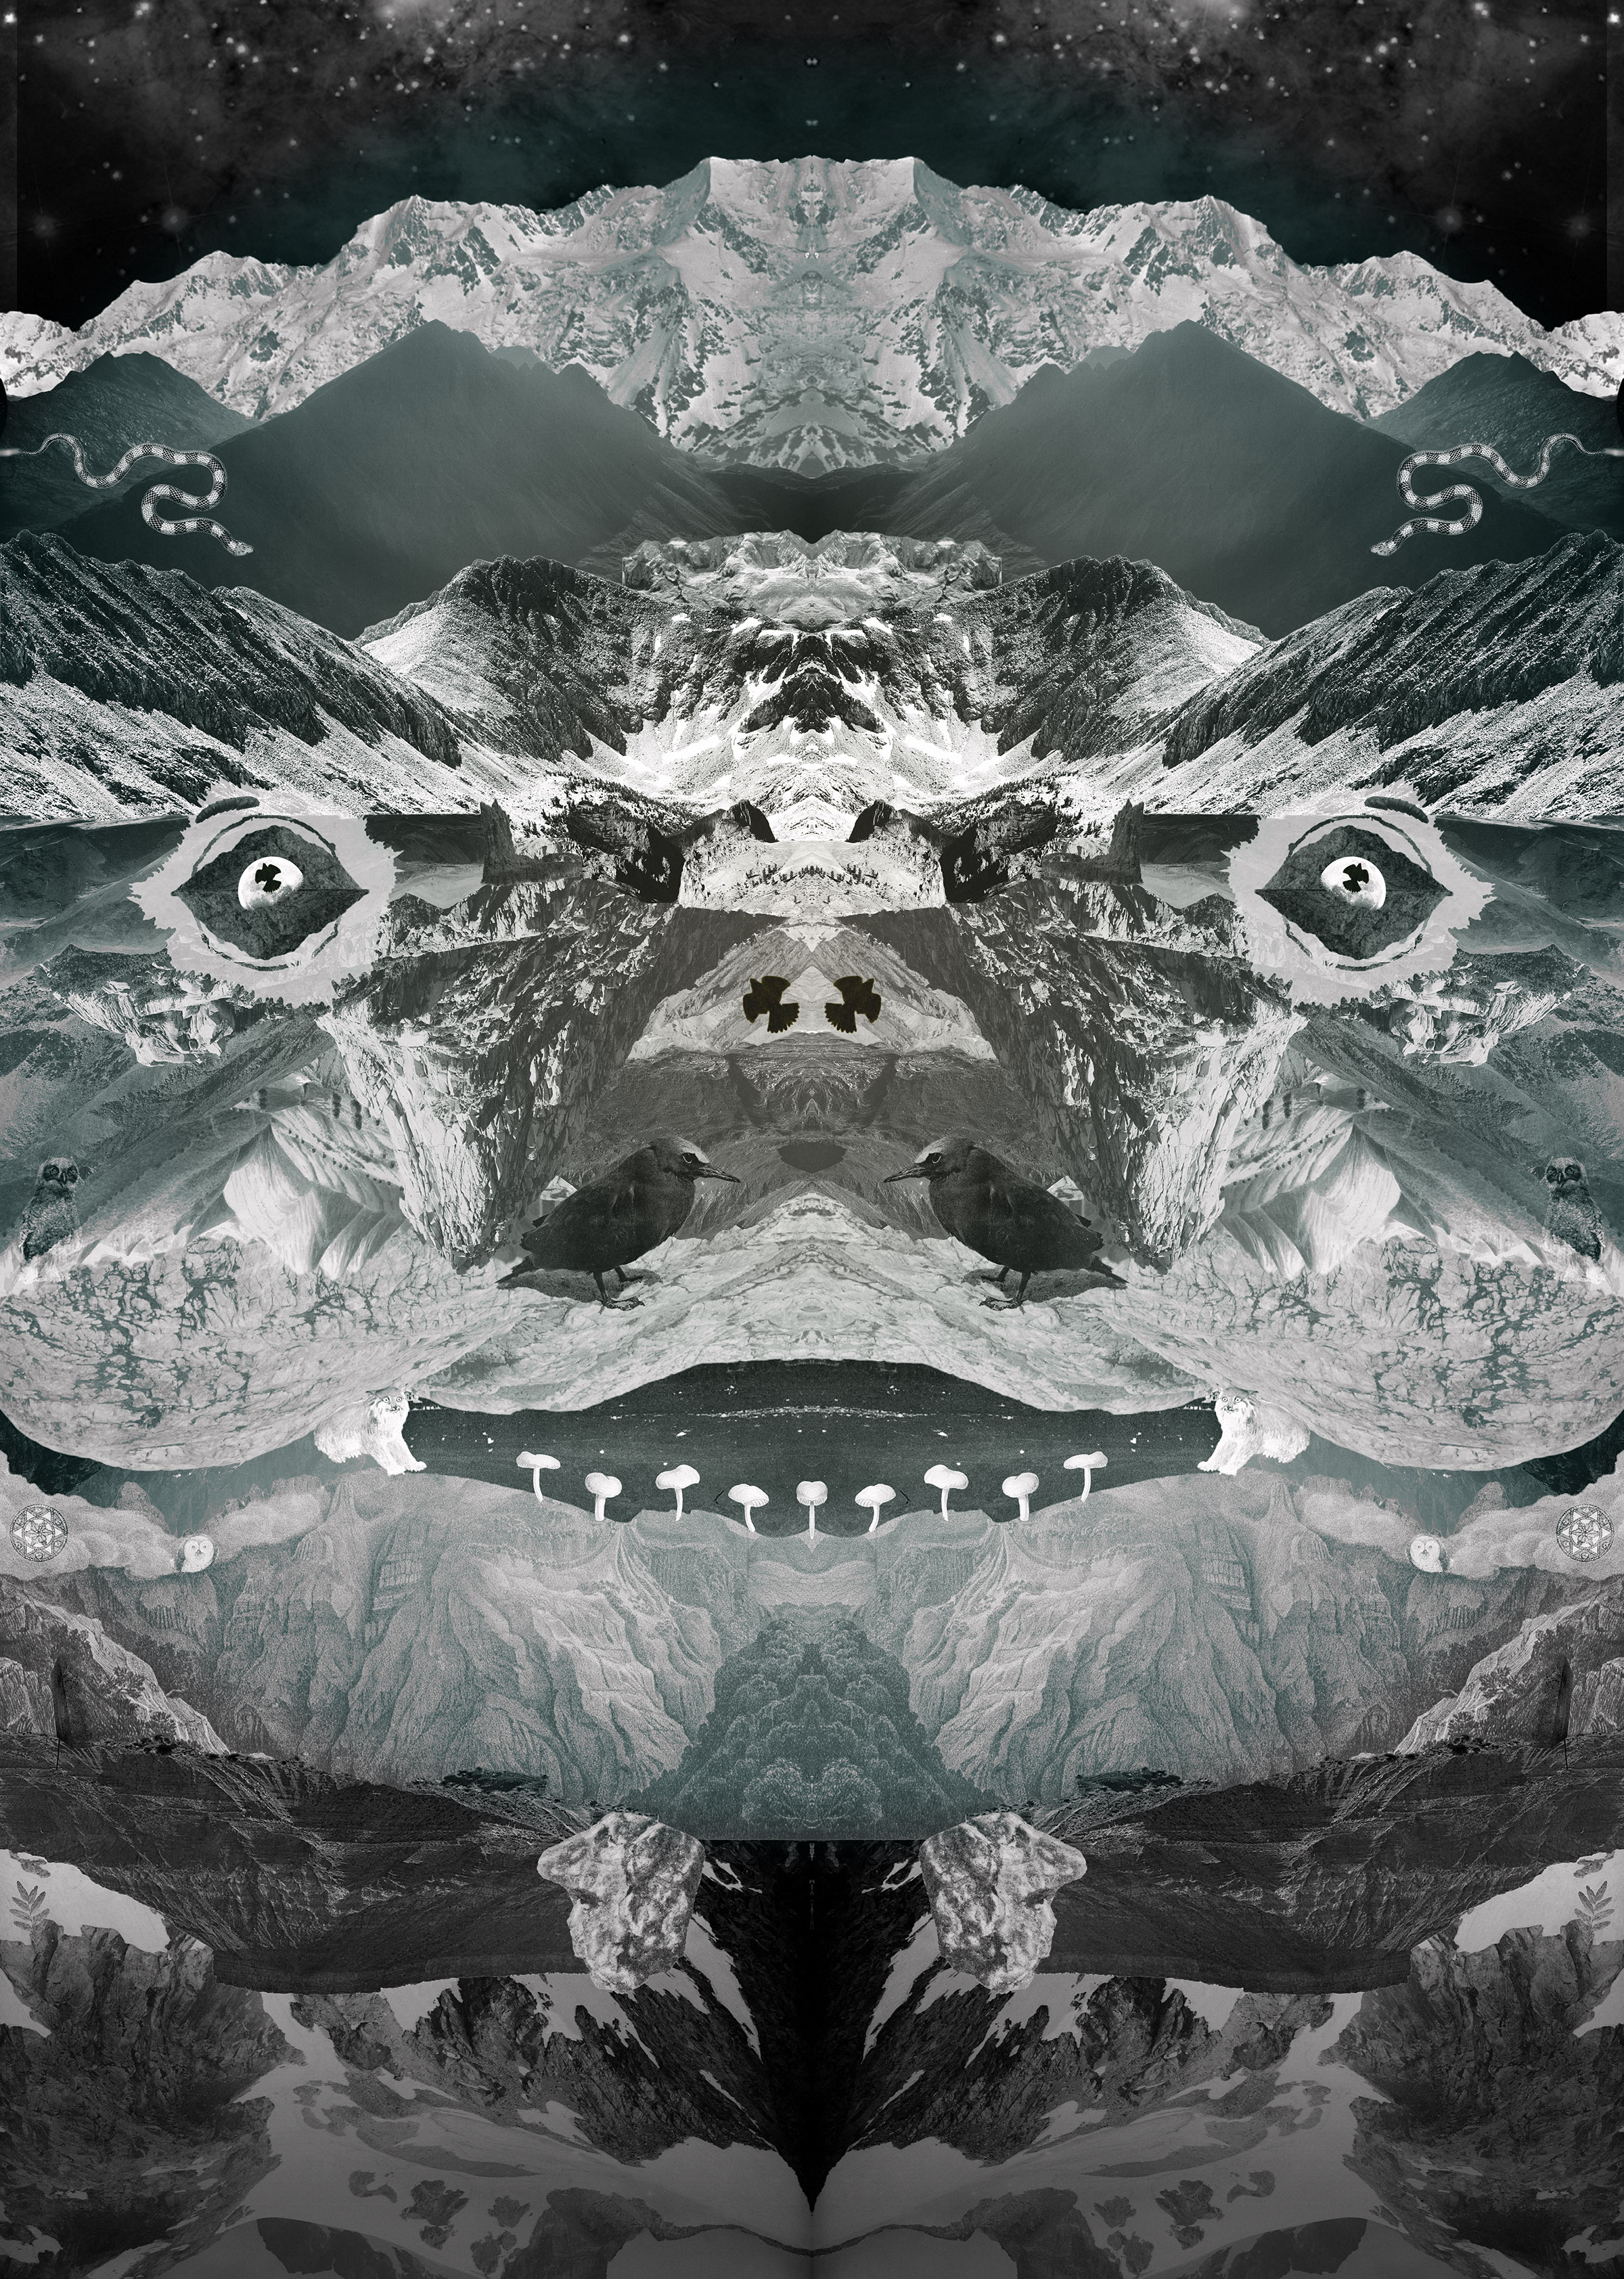 Collage consisting of vintage photography which form a face of a being